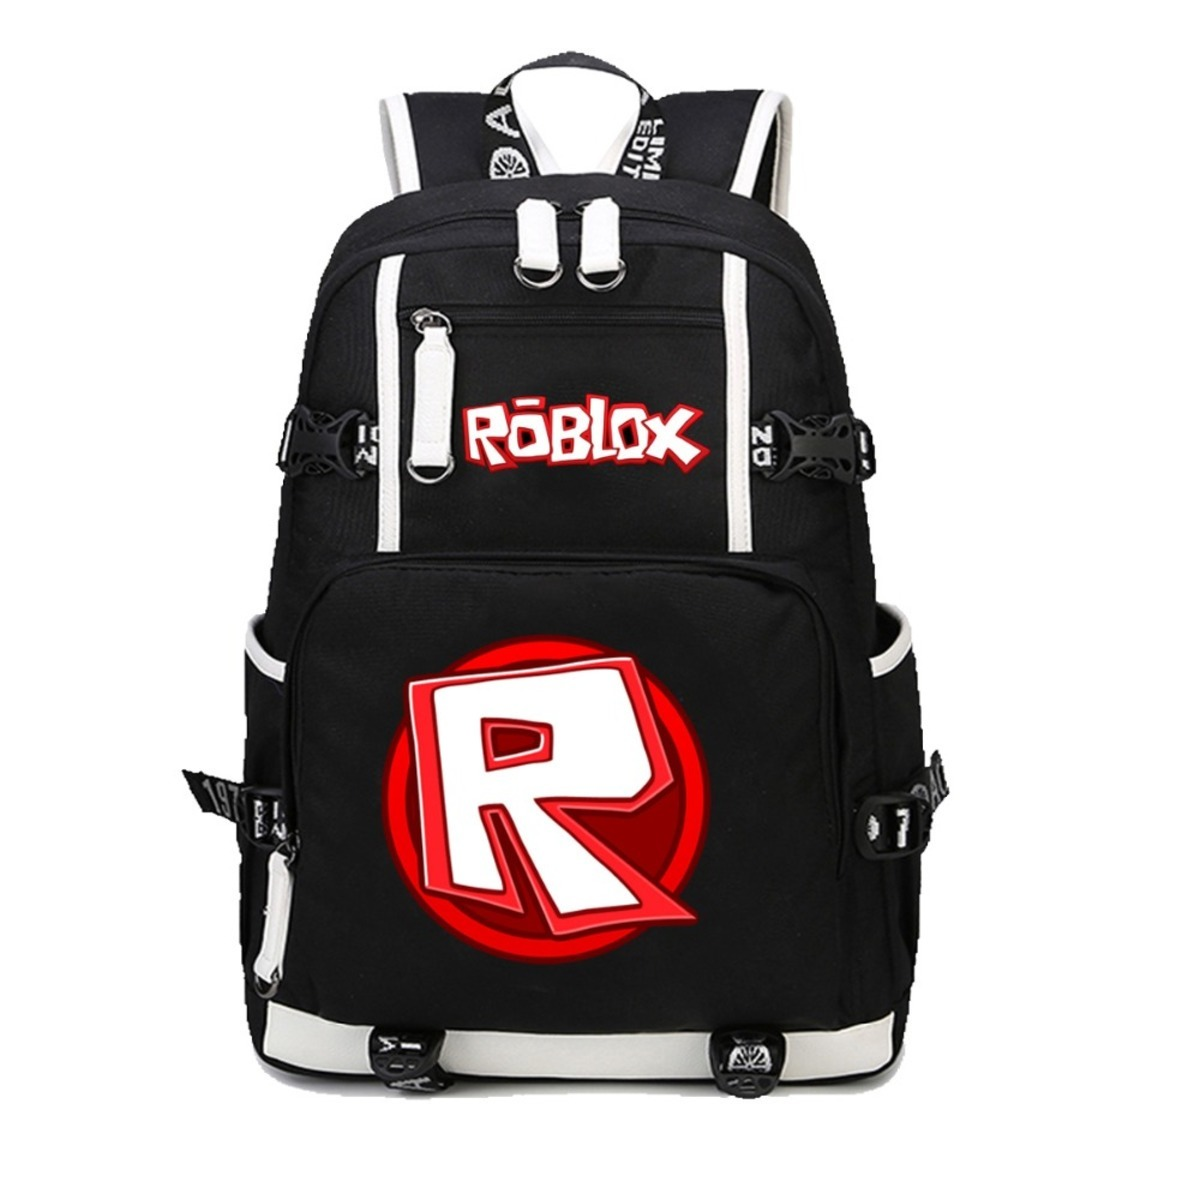 anime Roblox backpack student school bag women men shoulder travel bag Leisure Daily backpack Teenage Backpacks 5 style 2017 new naruto school backpack anime bag cosplay cartoon student leisure back to school 17 backpacks laptop travel shouler bag